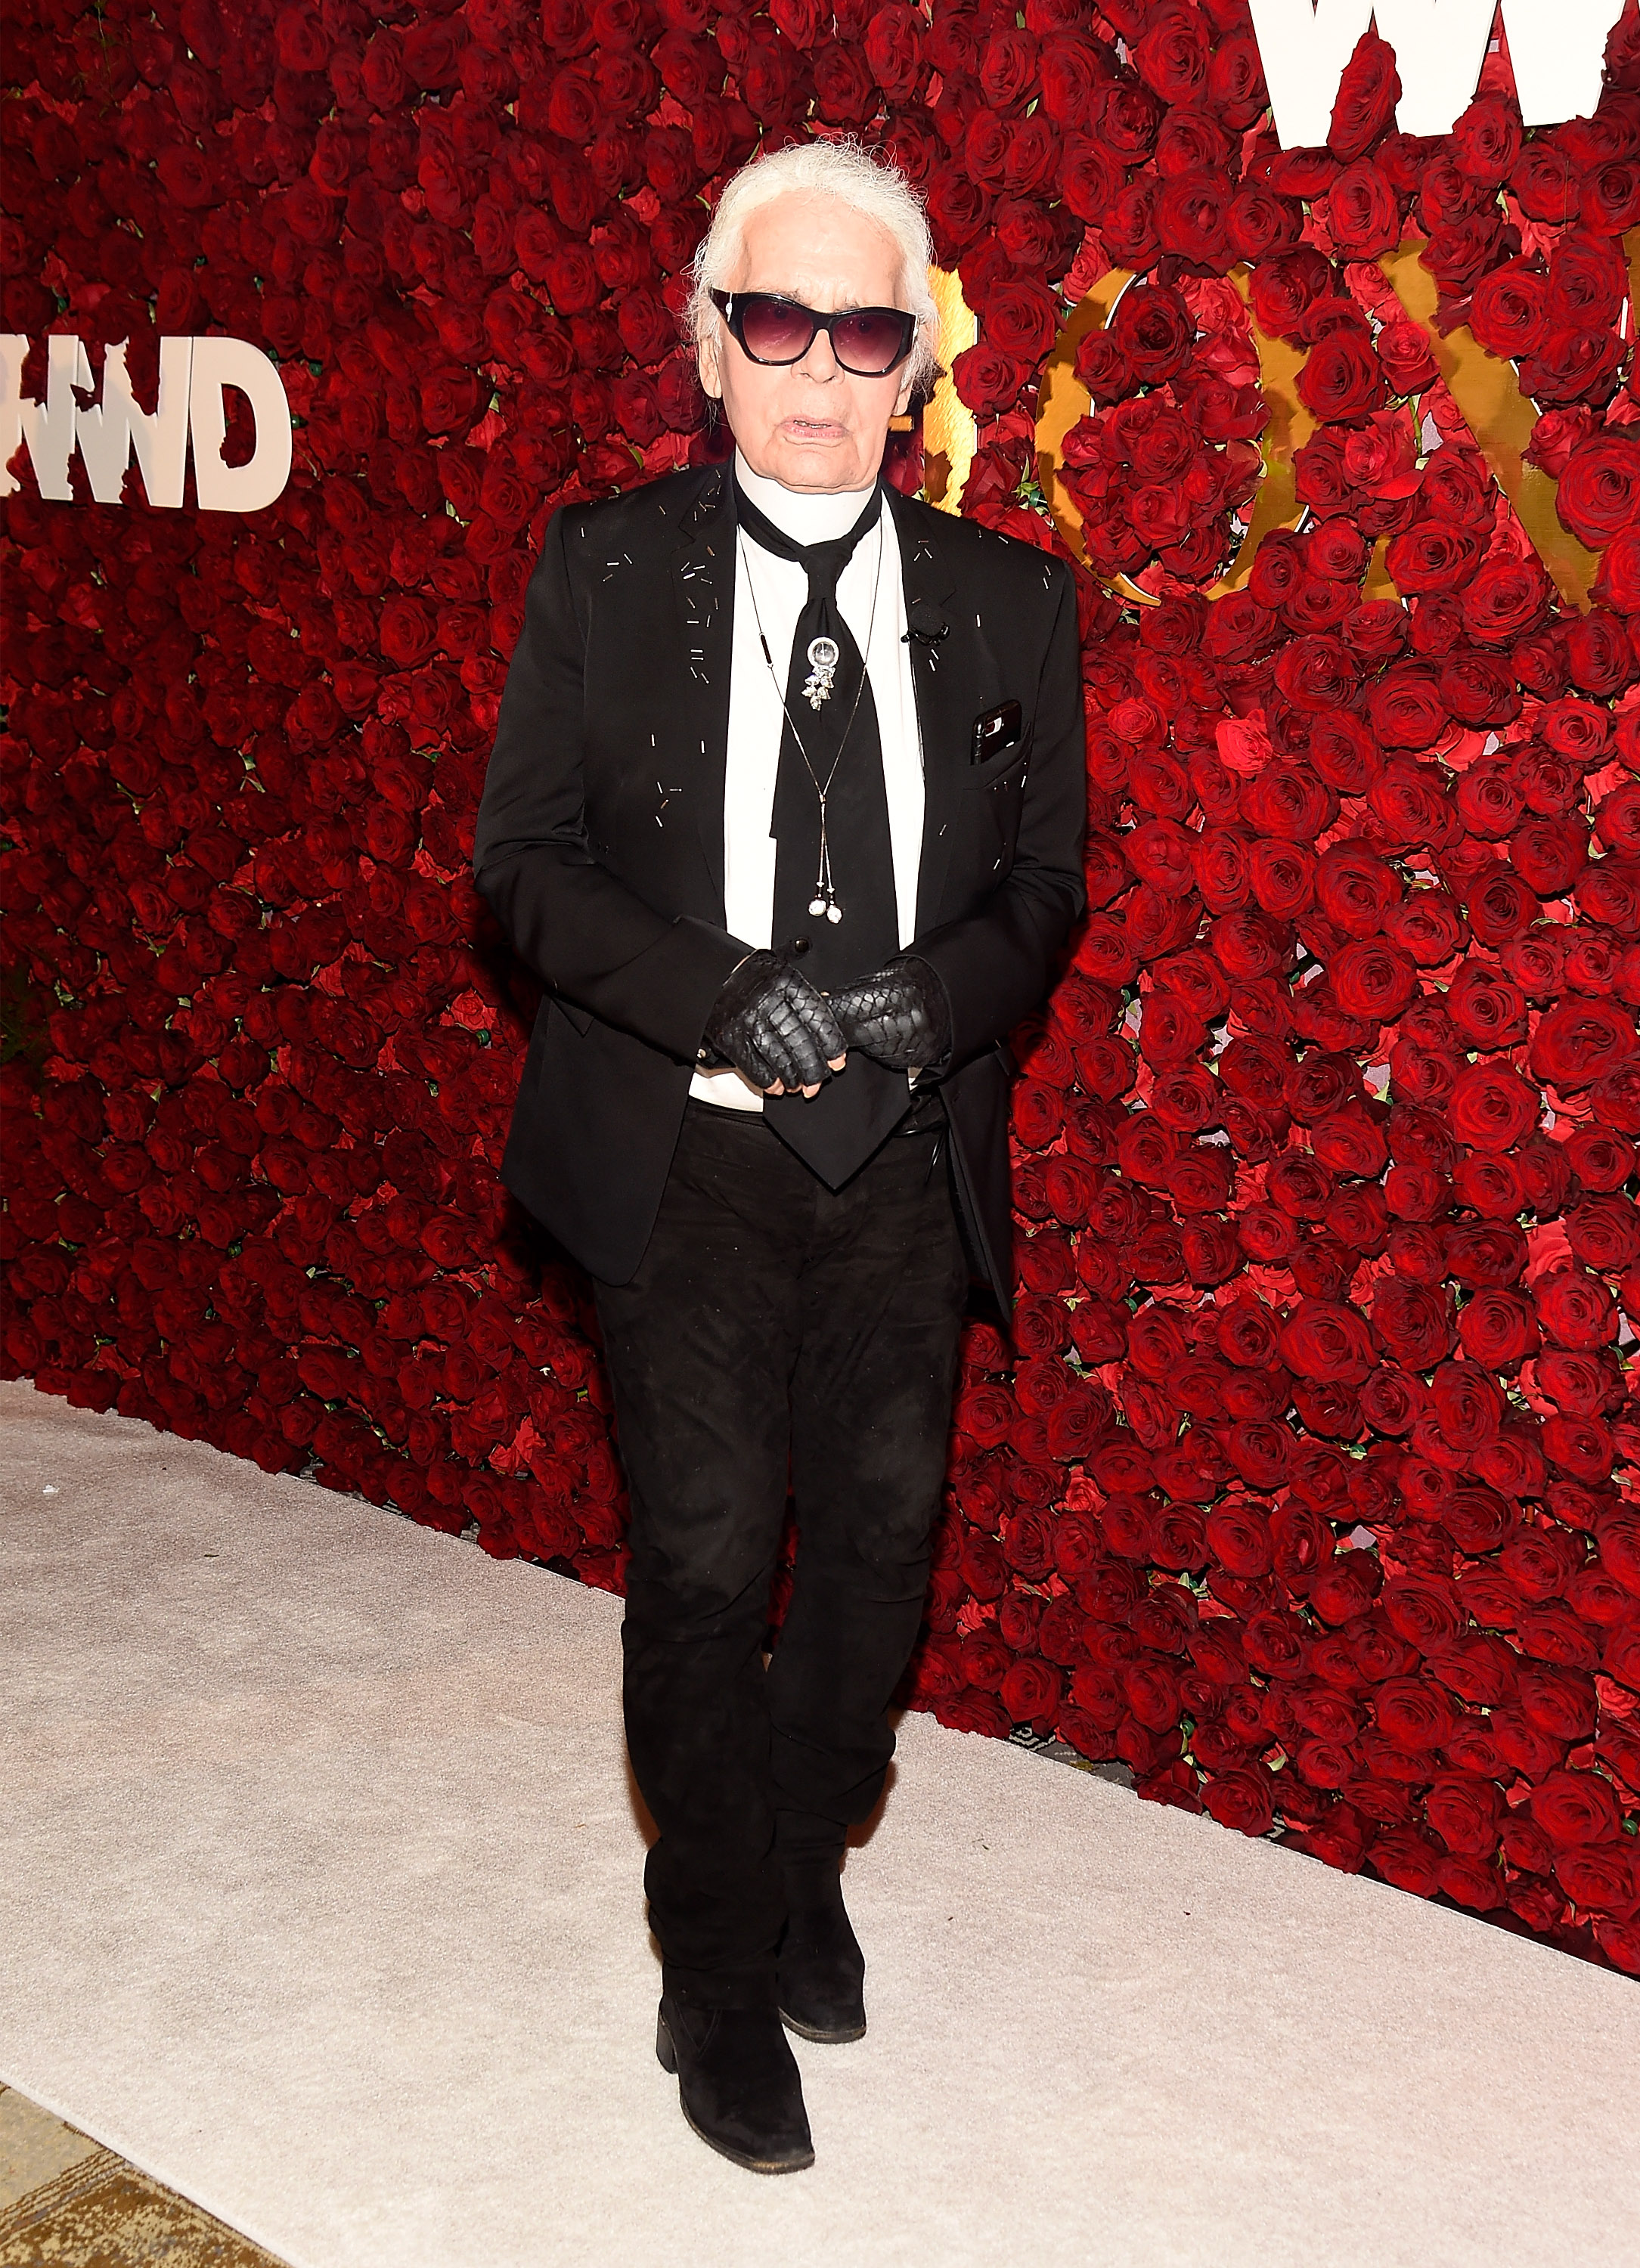 "<p>Chanel creative director, Karl Lagerfeld, has once again shown he is the Prince Philip of fashion royalty, outraging celebrities such as Chrissy Teigen and Rose McGowan with his views on the #MeToo movement.<br /> <br /> ""I'm fed up with it,"" Lagerfeld told <em><a href=""http://www.numero.com/en/fashion/interview-karl-lagerfeld-chanel-virgil-abloh-j-w-anderson-azzedine-alaia"" target=""_blank"" draggable=""false"">Numéro magazine.</a></em><br /> <br /> ""What shocks me most in all of this are the starlets who have taken 20 years to remember what happened. Not to mention the fact there are no prosecution witnesses.""<br /> <br /> Sparked by the sexual allegations made against Hollywood producer, Harvey Weinstein, the #MeToo movement has called for the end of sexual exploitation and harassment of women in the entertainment industry and beyond.<br /> <br /> But don't expect Kasier Karl to be reviewing Chanel's workplace regulations anytime soon.<br /> <br /> ""I read somewhere that now you must ask a model if she is comfortable with posing. It's simply too much, from now on, as a designer, you can't do anything,"" he lamented.<br /> <br /> ""If you don't want your pants pulled about, don't become a model! Join a nunnery, there'll always be a place for you in the convent. They're recruiting even!""<br /> <br /> Teigen and McGown took to Twitter to take aim at Lagerfeld for his outlandish comments.<br /> <br /> ""Karl, your cruelty is tired. You've made so much money off women's insecurities, time for you to ride off into the victim shaming sunset,'' <a href=""https://twitter.com/rosemcgowan?ref_src=twsrc%5Etfw&ref_url=http%3A%2F%2Fpeople.com%2Fstyle%2Fkarl-lagerfeld-slams-times-up-me-too-movement-celebrities-react%2F"" target=""_blank"" draggable=""false"">tweeted McGowan.</a><br /> <br /> ""Surely there is an in-between here, karl"" <a href=""https://twitter.com/chrissyteigen?ref_src=twsrc%5Etfw&ref_url=http%3A%2F%2Fpeople.com%2Fstyle%2Fkarl-lagerfeld-slams-times-up-me-too-movement-celebrities-react%2F"" target=""_blank"" draggable=""false"">posted Teigen.</a><br /> <br /> This is not the first-time Lagerfeld has courted controversy with his comments.<br /> <br /> Here are some of his most outrageous quotes.</p>"